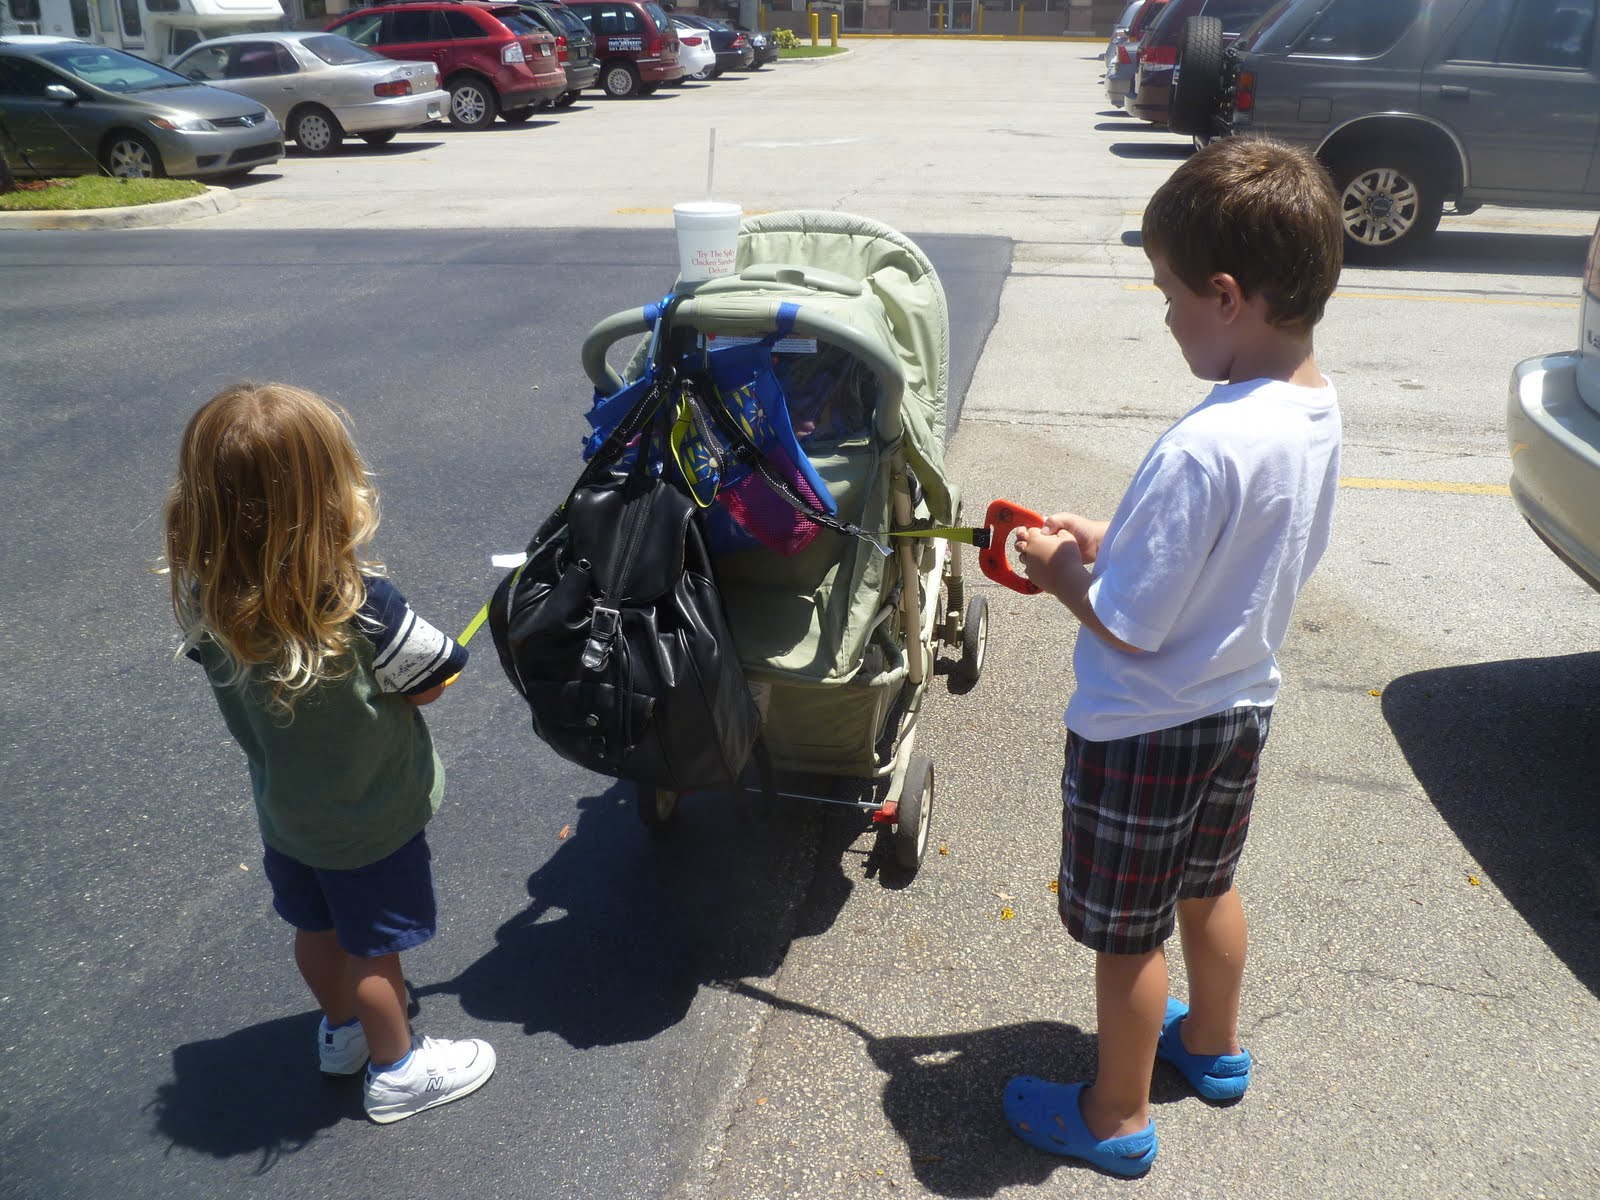 Baby Pushchair Near Me Hold On Handles For Stroller Walking Review Giveaway